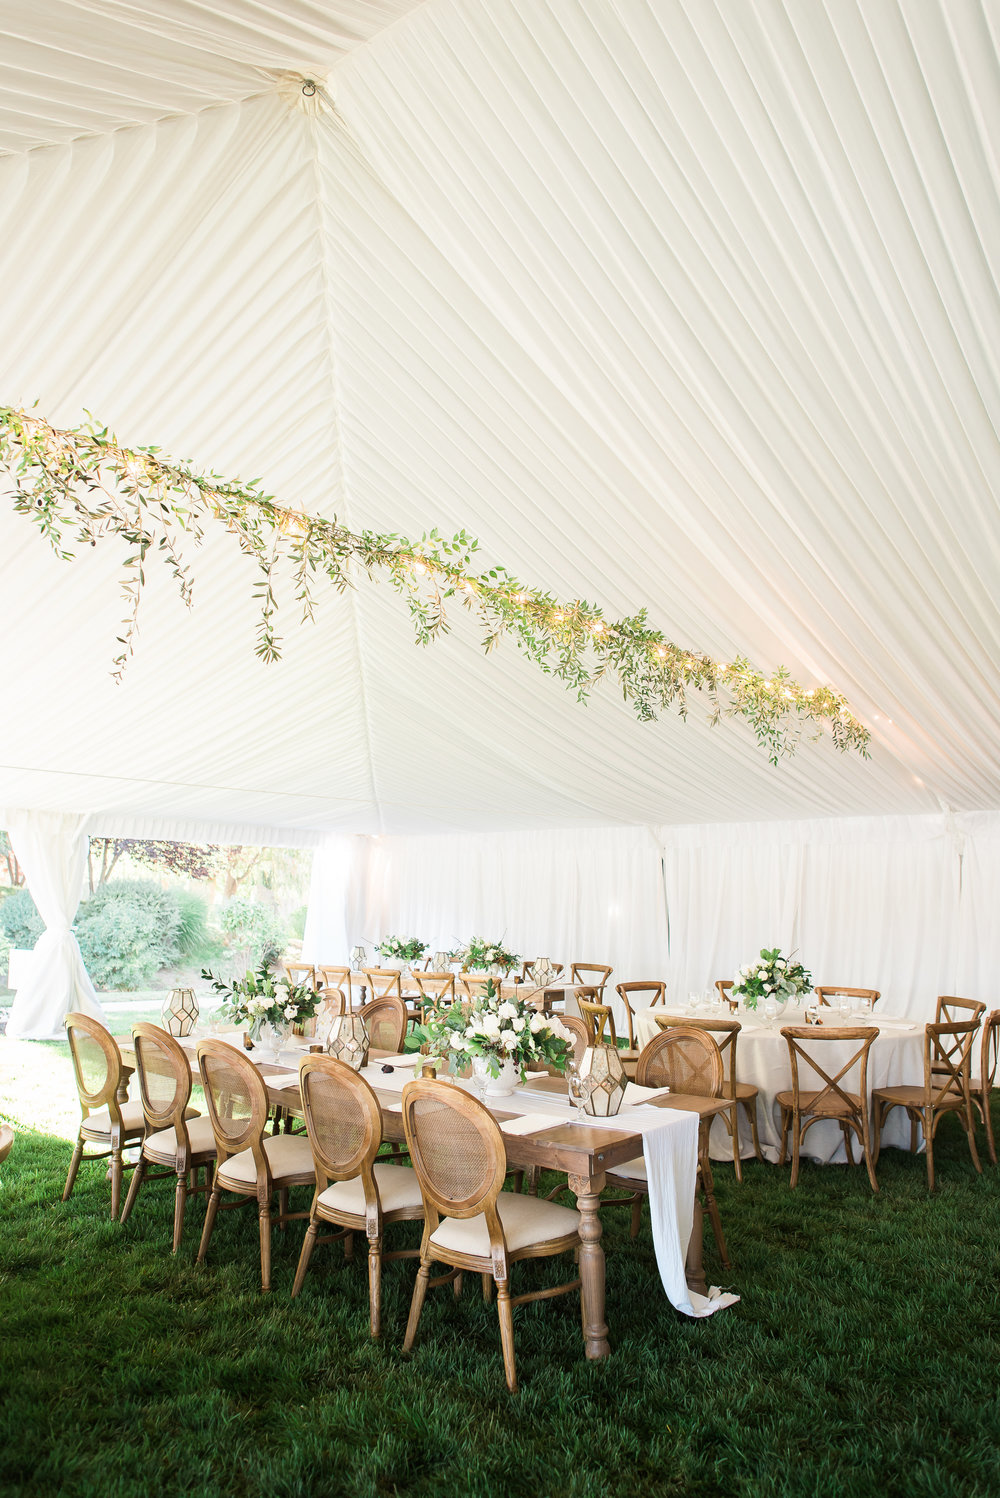 farm table rentals, Ira and Lucy, Boise wedding rentals